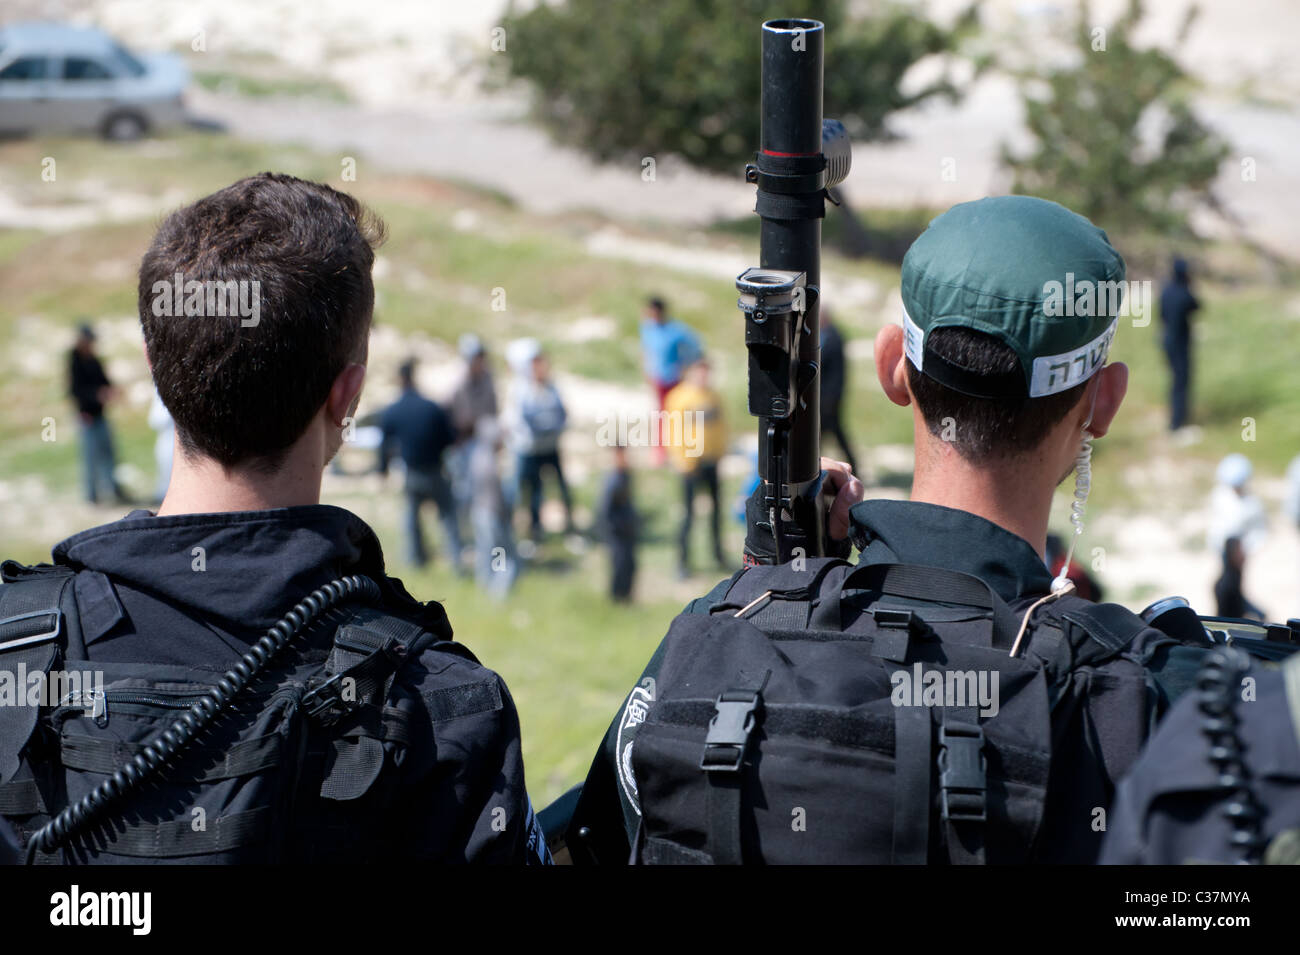 Israeli riot police wield tear gas guns during clashes with Palestinian youth in the East Jerusalem neighborhood - Stock Image